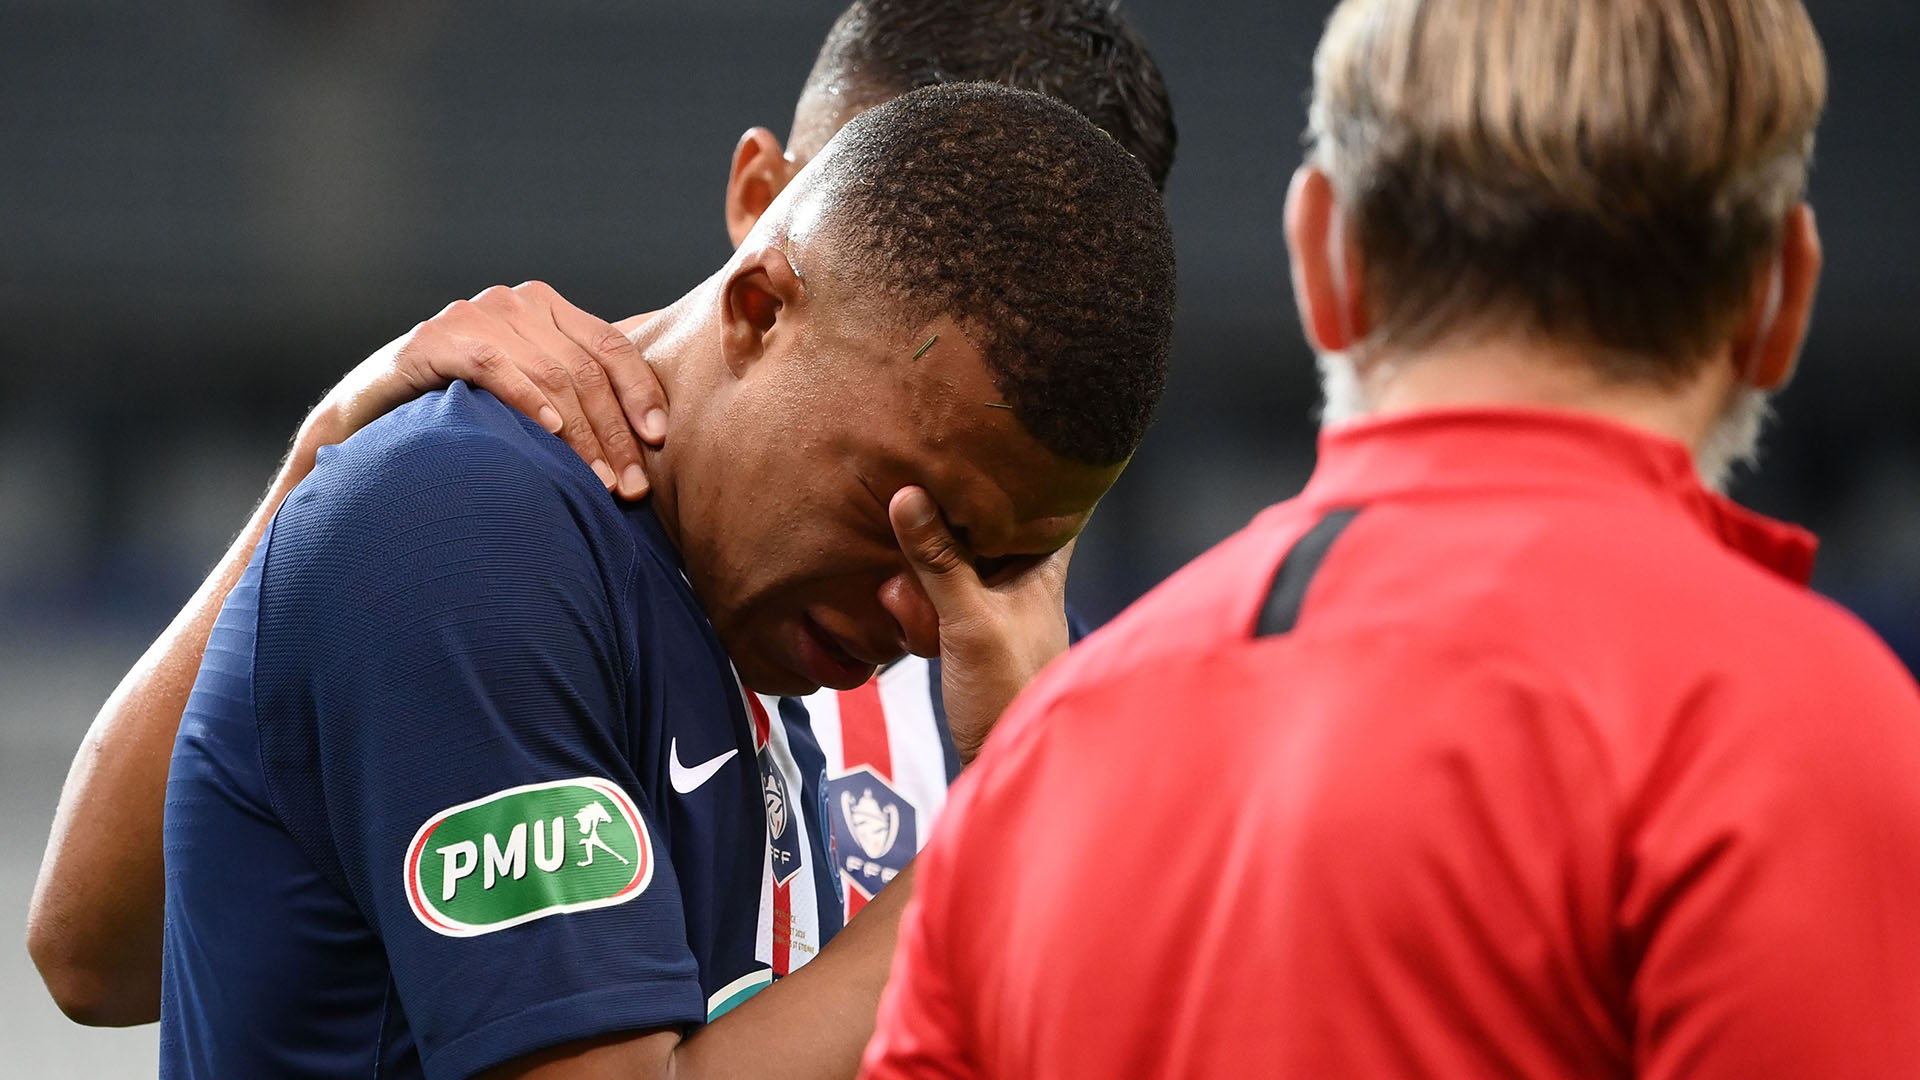 PSG striker Mbappe to miss Champions League quarter-final